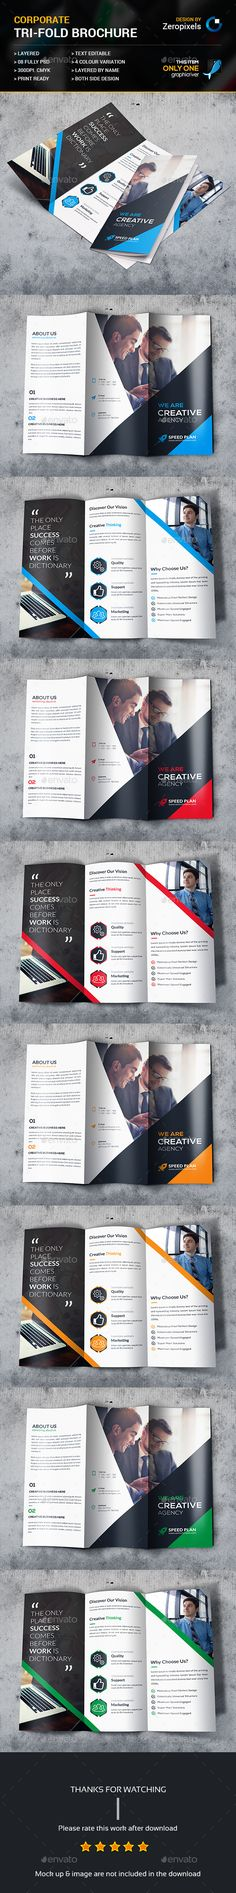 Corporate Business Trifold Brochures Template PSD. Download here: http://graphicriver.net/item/corporate-business-trifold-brochures/15523688?ref=ksioks